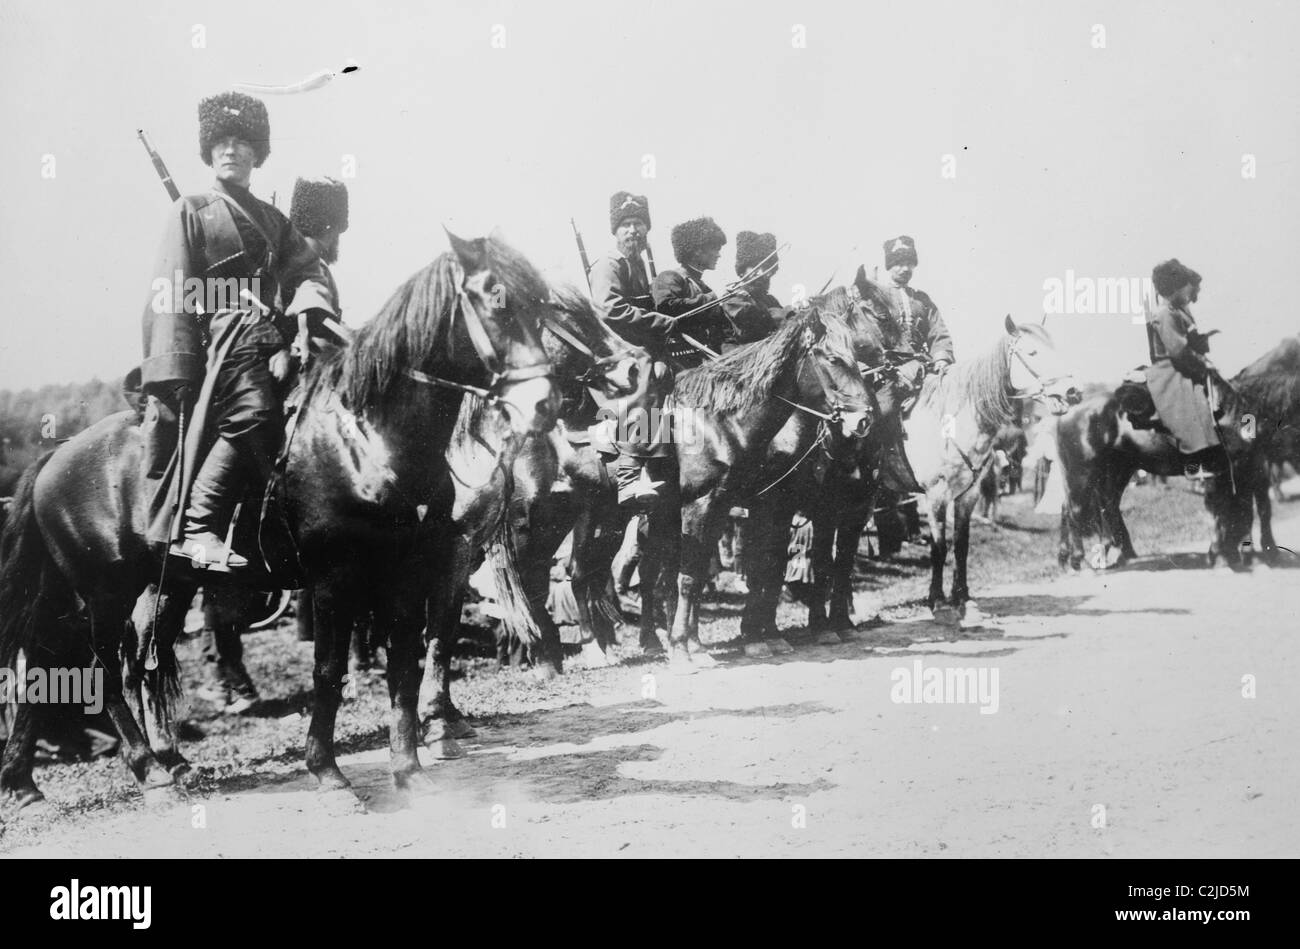 Mounted Russian Cossacks Scan the Battlefield - Stock Image